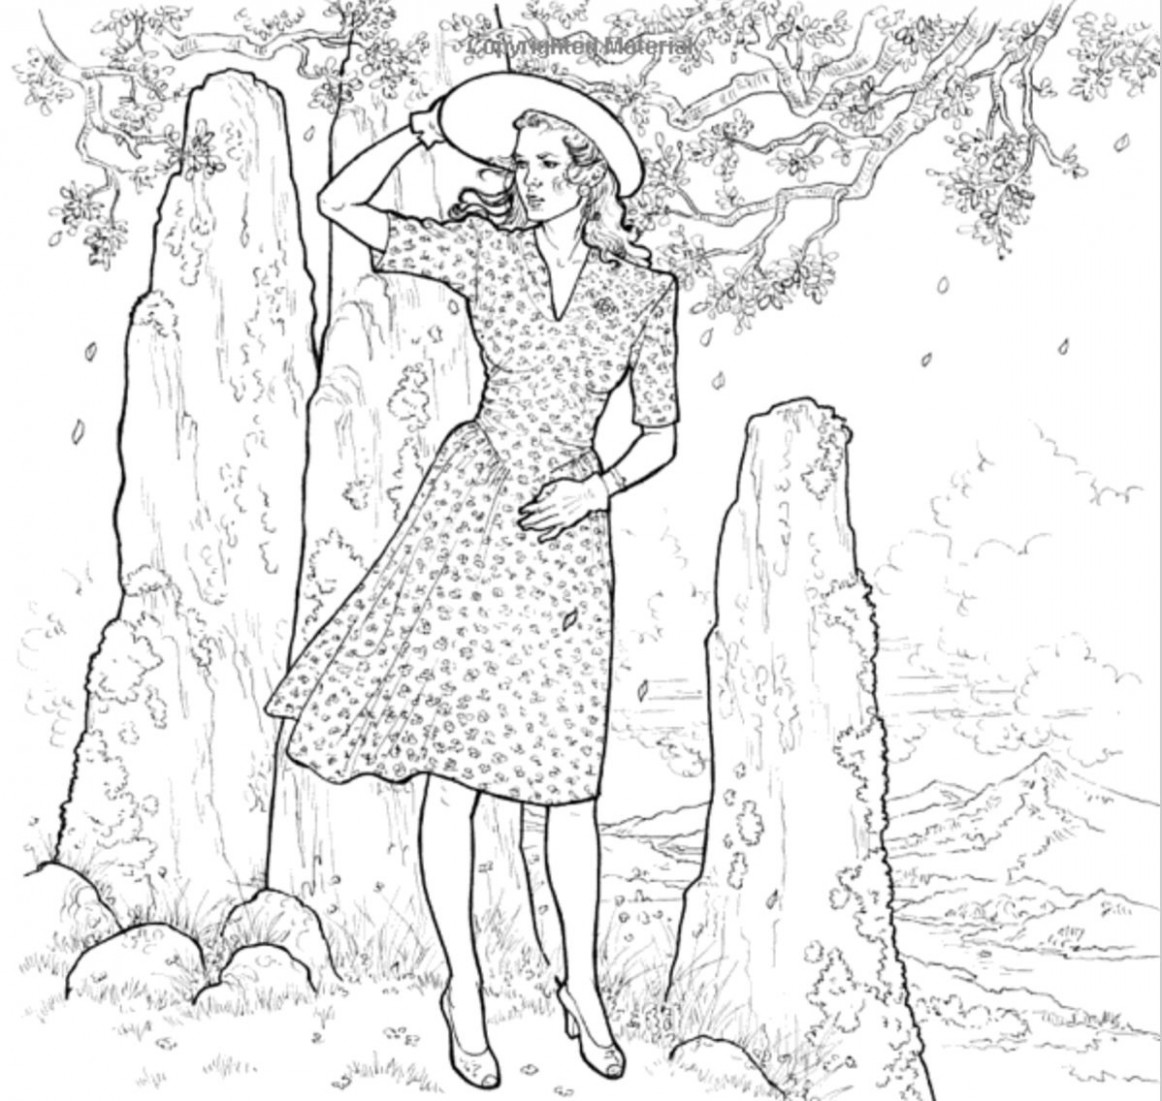 16 Things to Expect from the New 'Outlander' Coloring Book – outlander coloring book